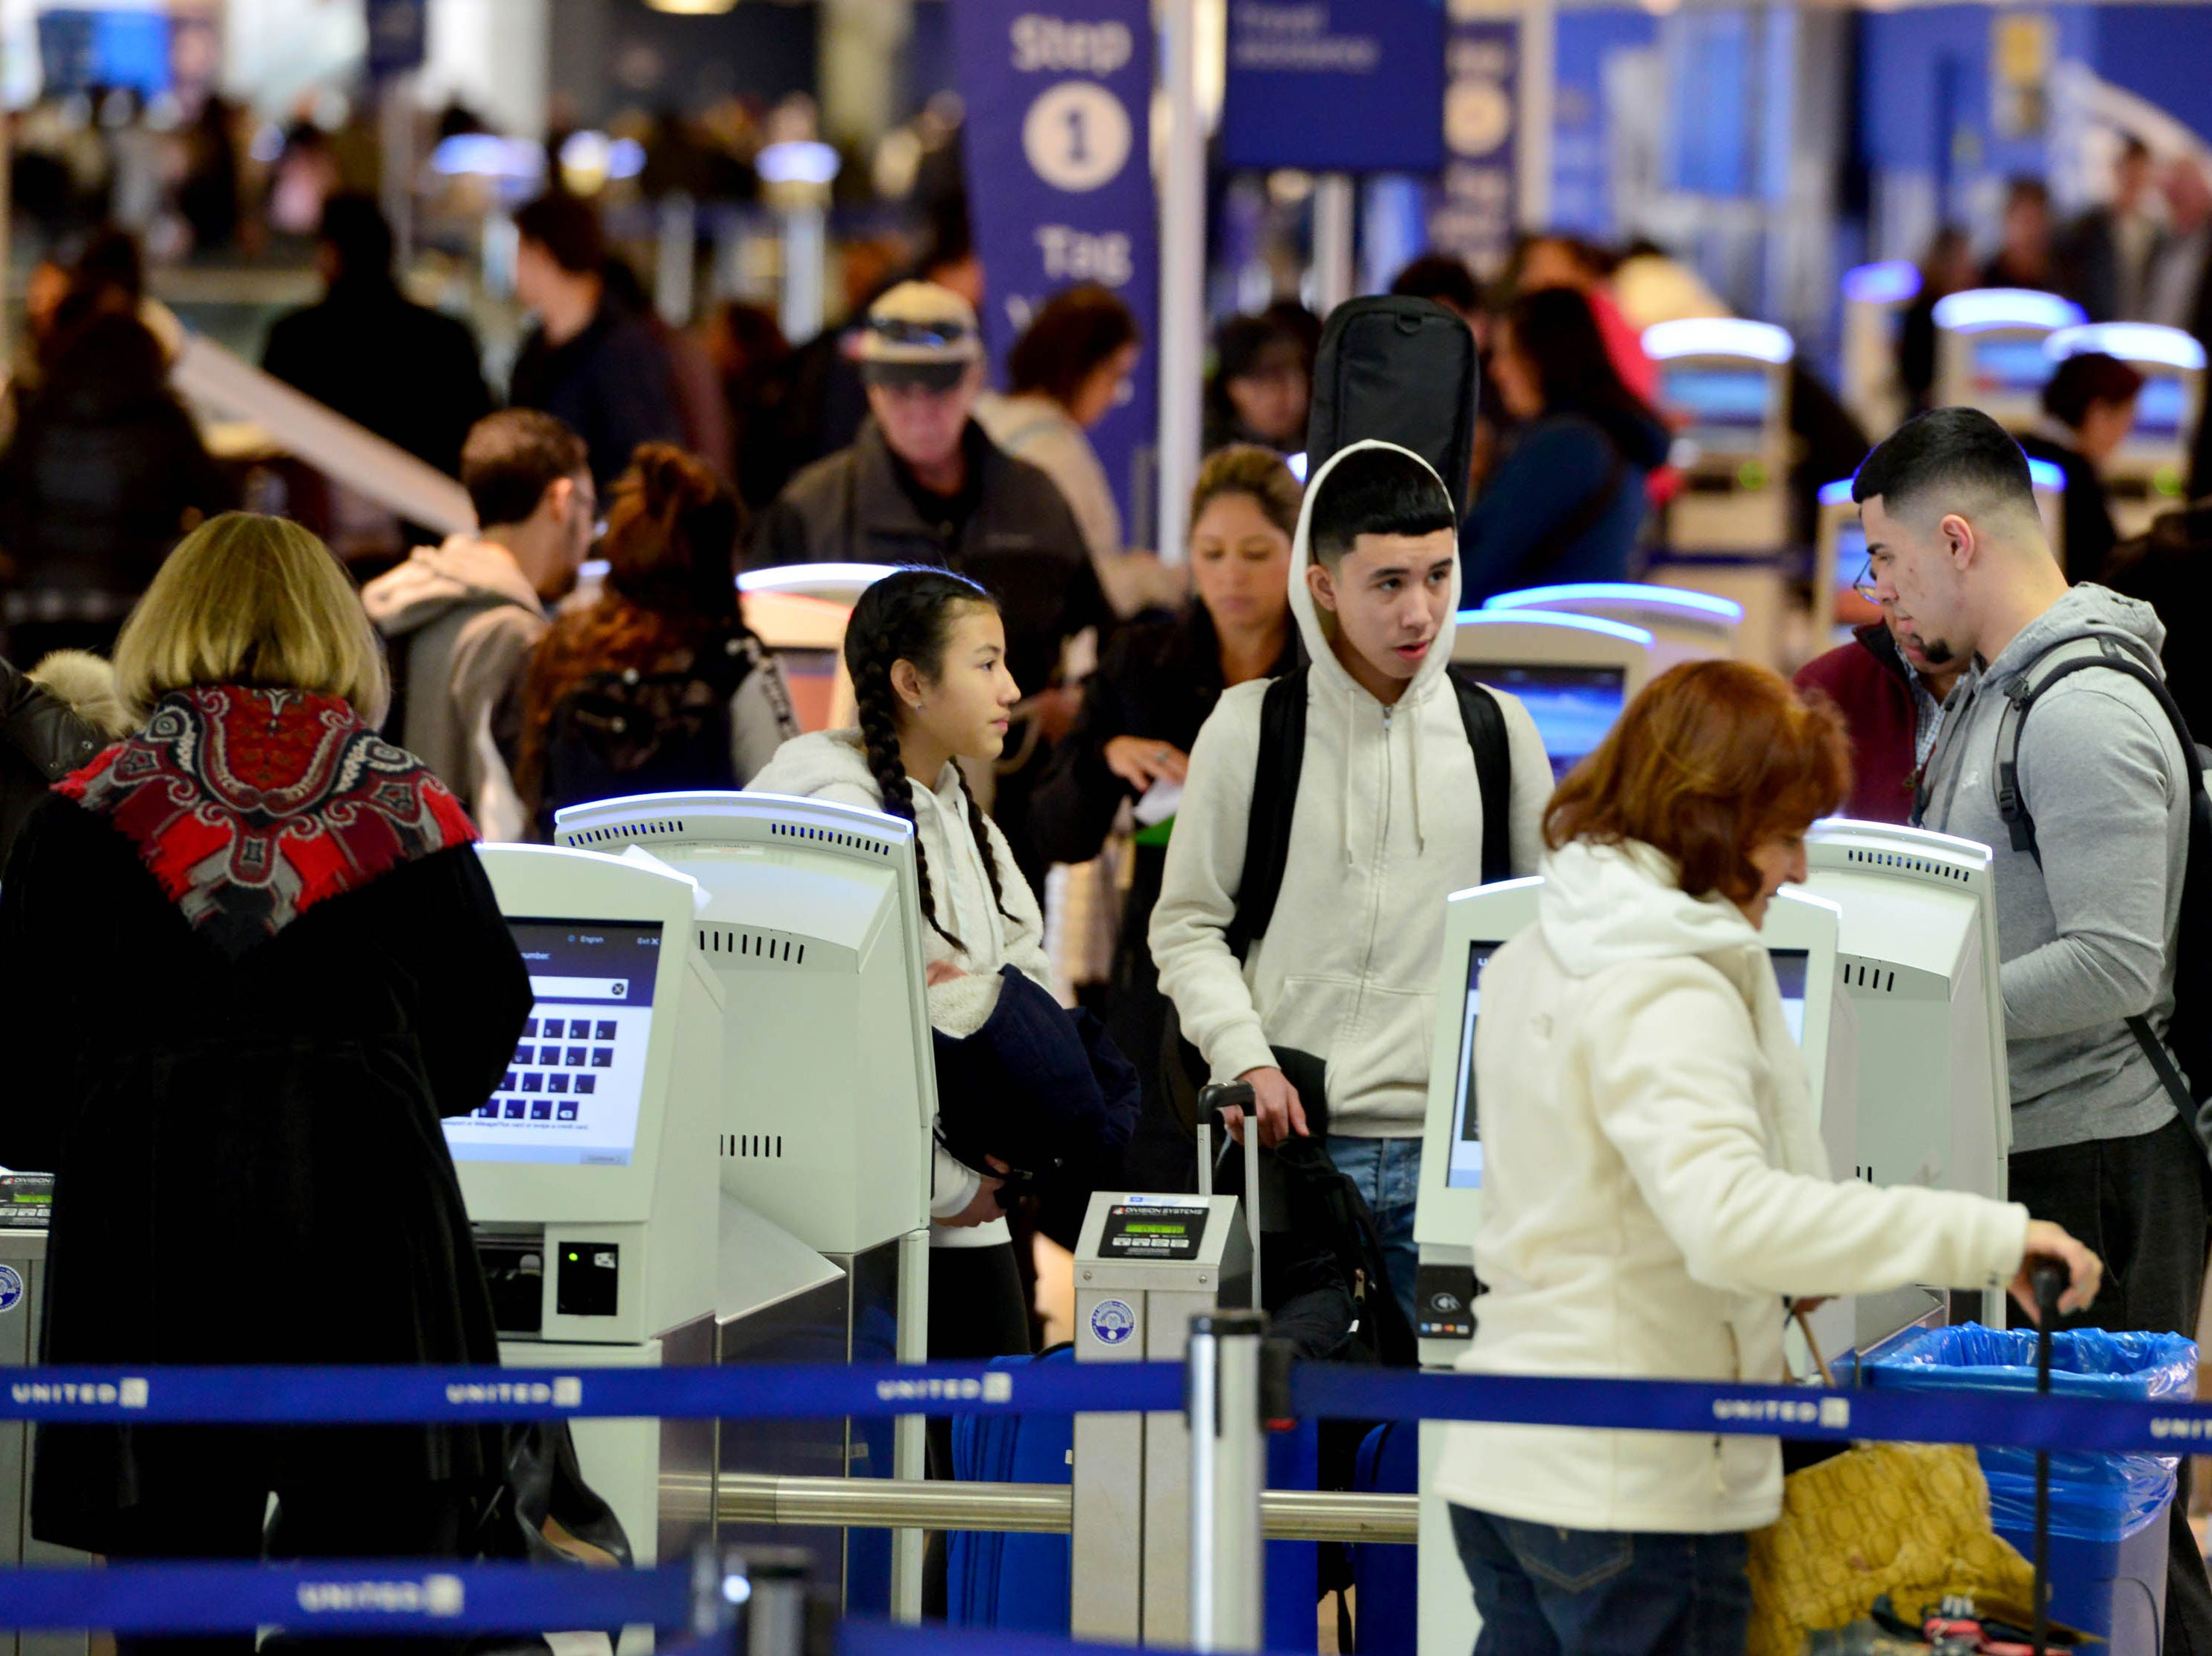 Travelers checking in for their flight at Newark Airport. Some traveller experienced the effects of the Federal shutdown while traveling in and out of the airport in Newark, Friday Jan. 25, 2019.